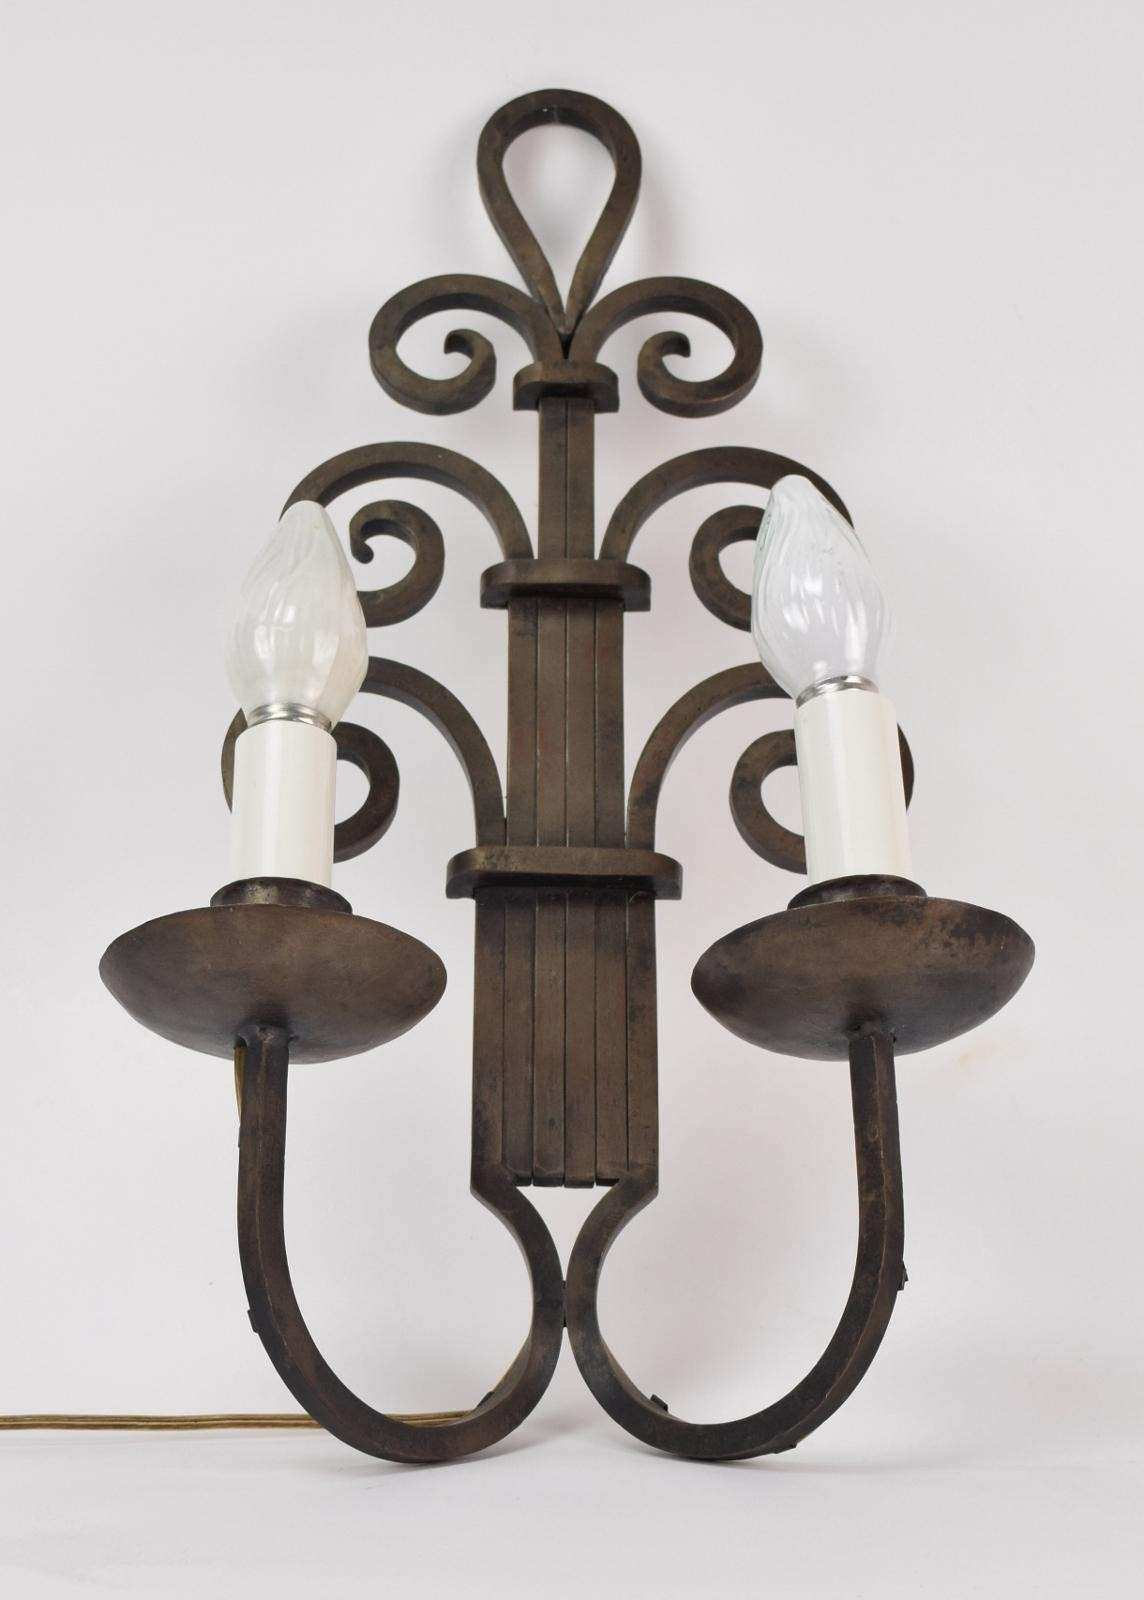 1930s Art Deco Gothic Wrought Iron Scroll Wall